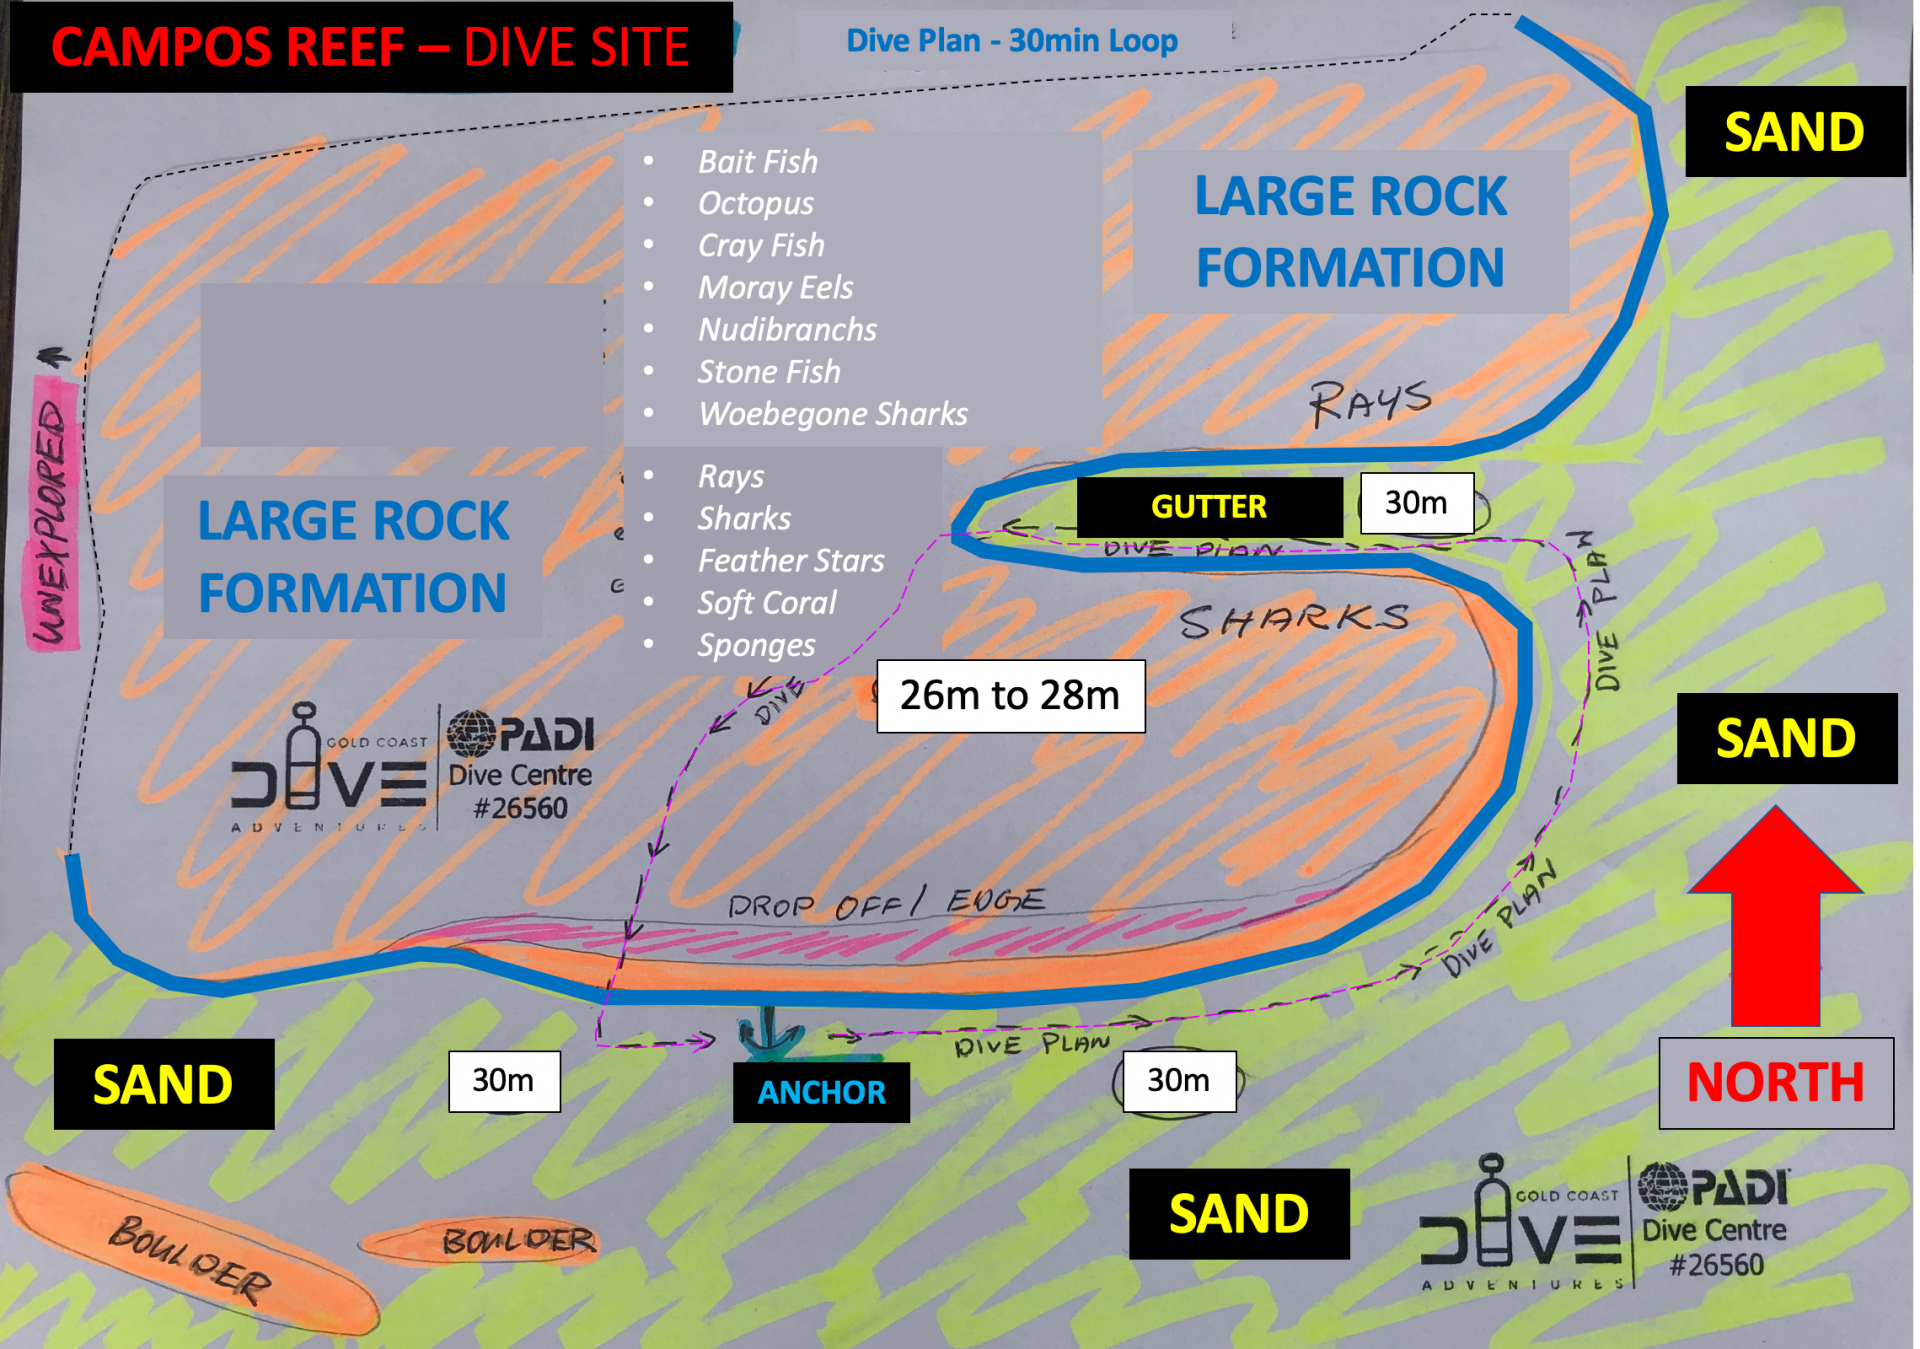 Campos Reef Dive Site Map